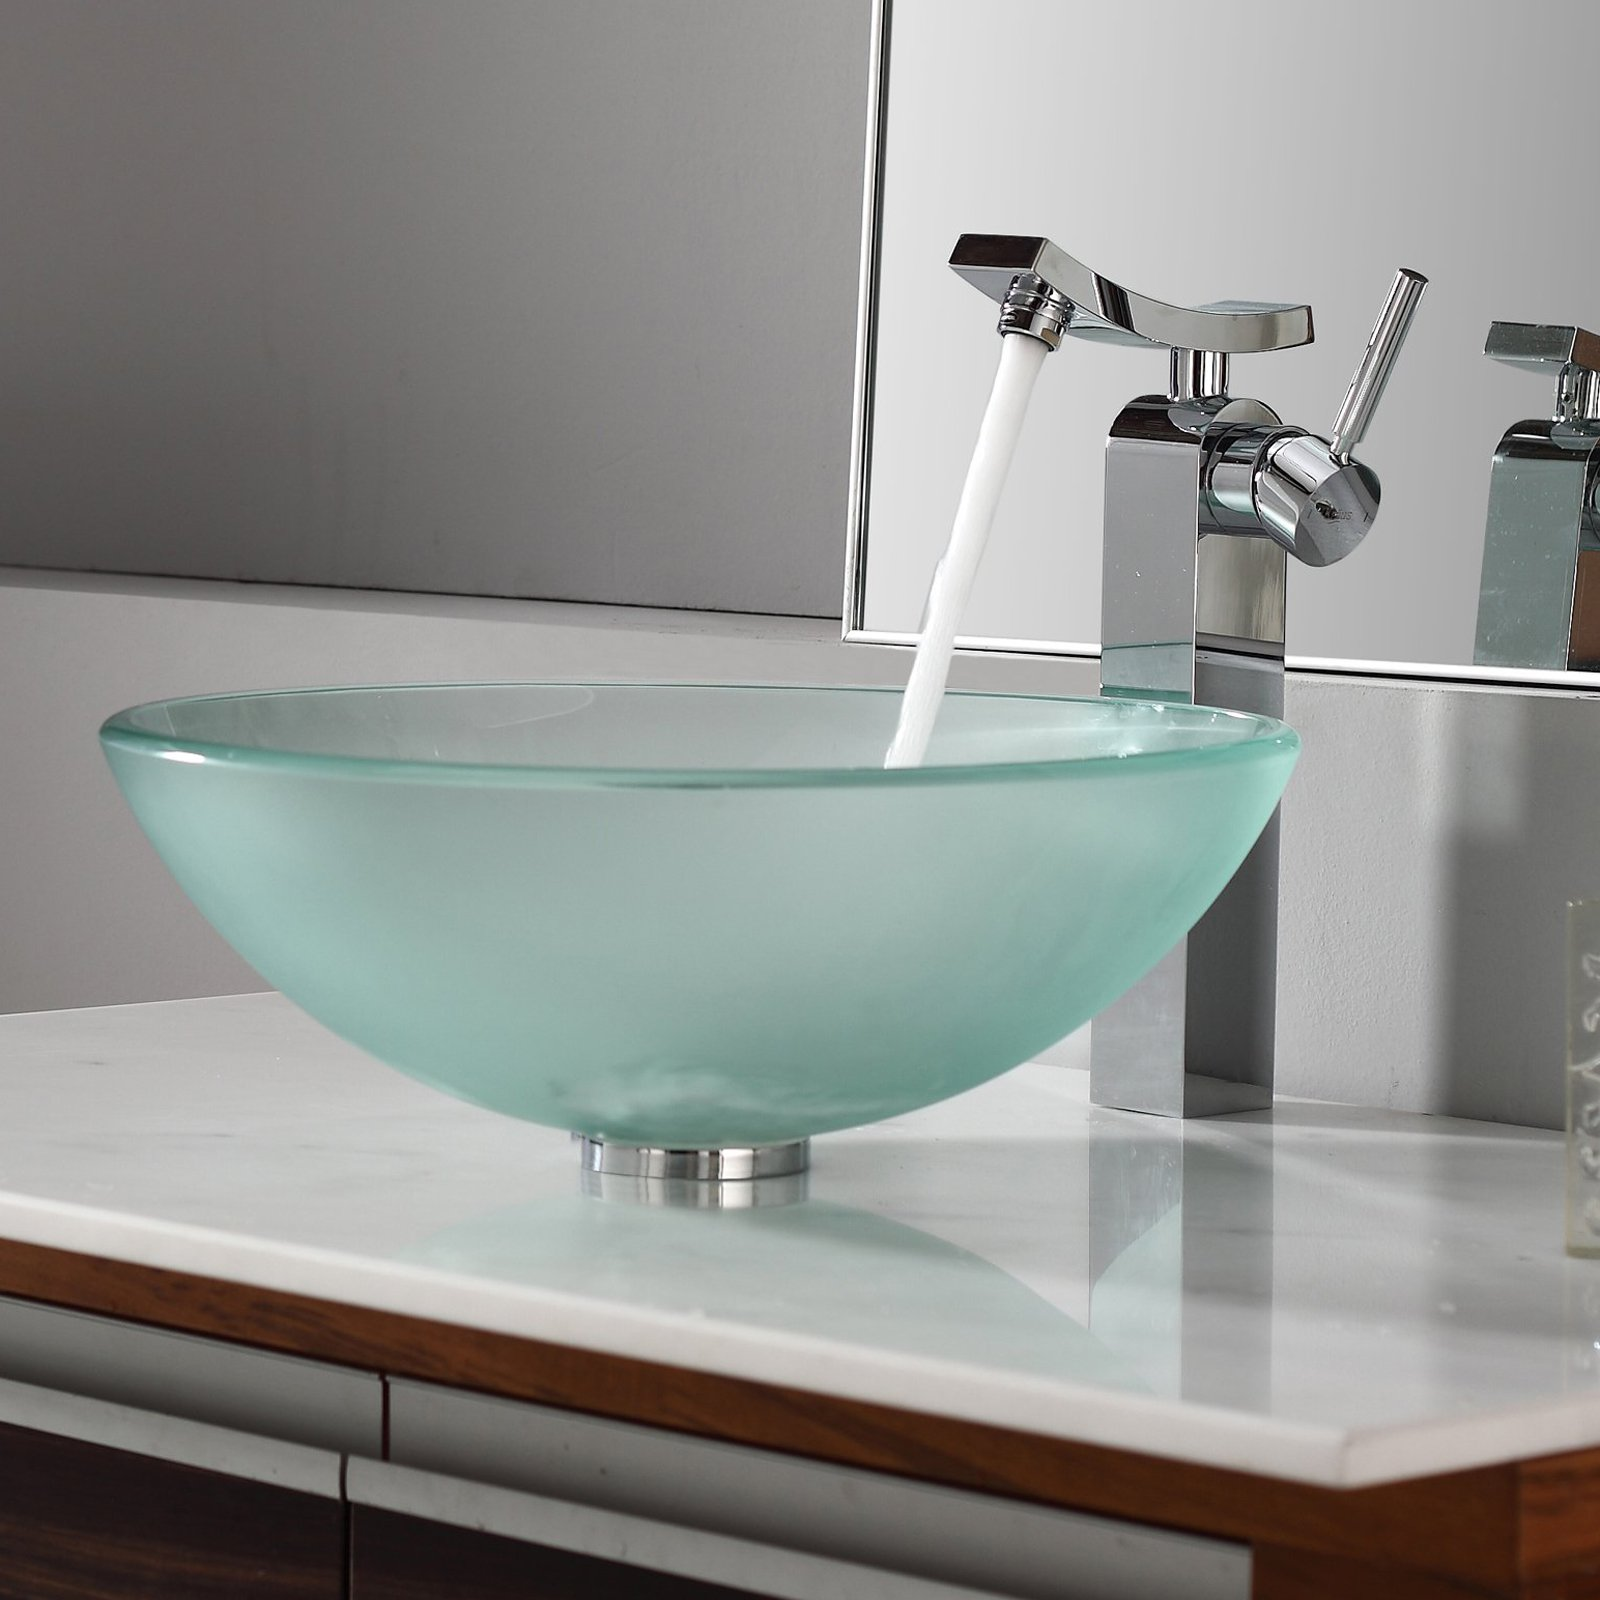 Kraus C-GV-101FR-12mm-14300CH Frosted Glass Vessel Sink and Unicus Faucet - Chrome